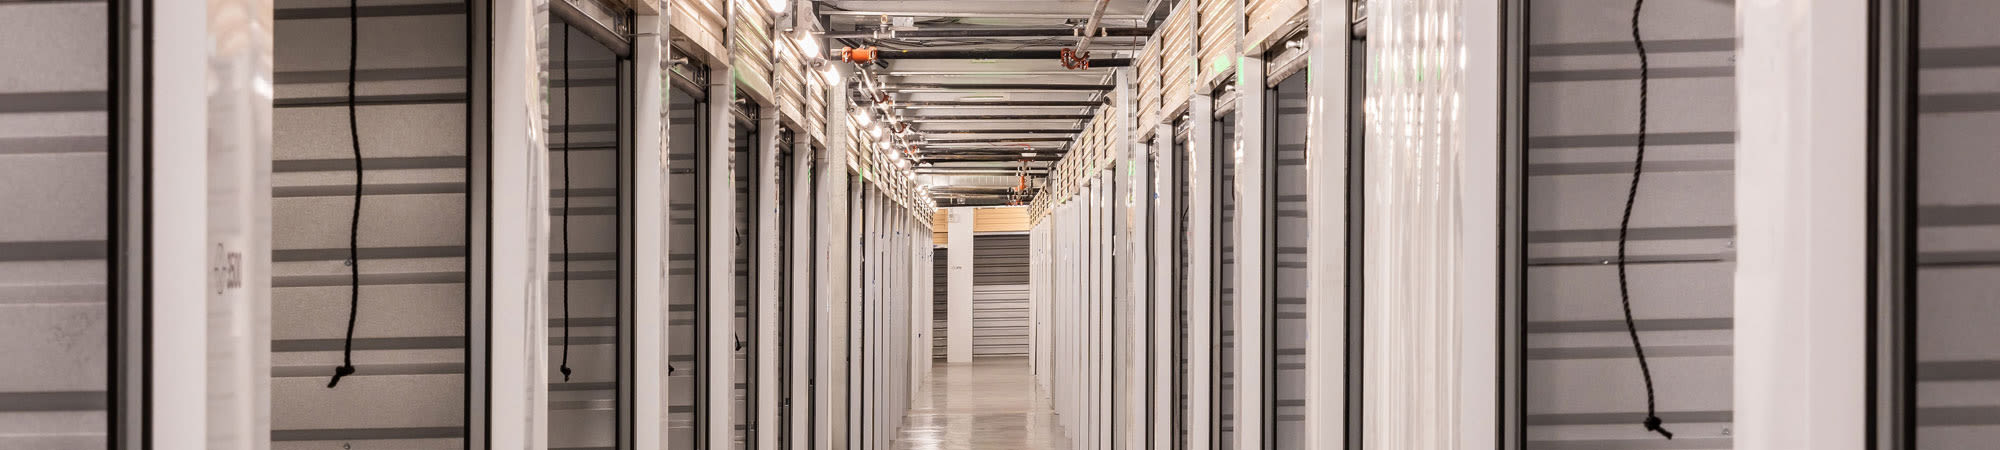 Temperature-controlled storage at Cubes Self Storage in Kirkland, Washington